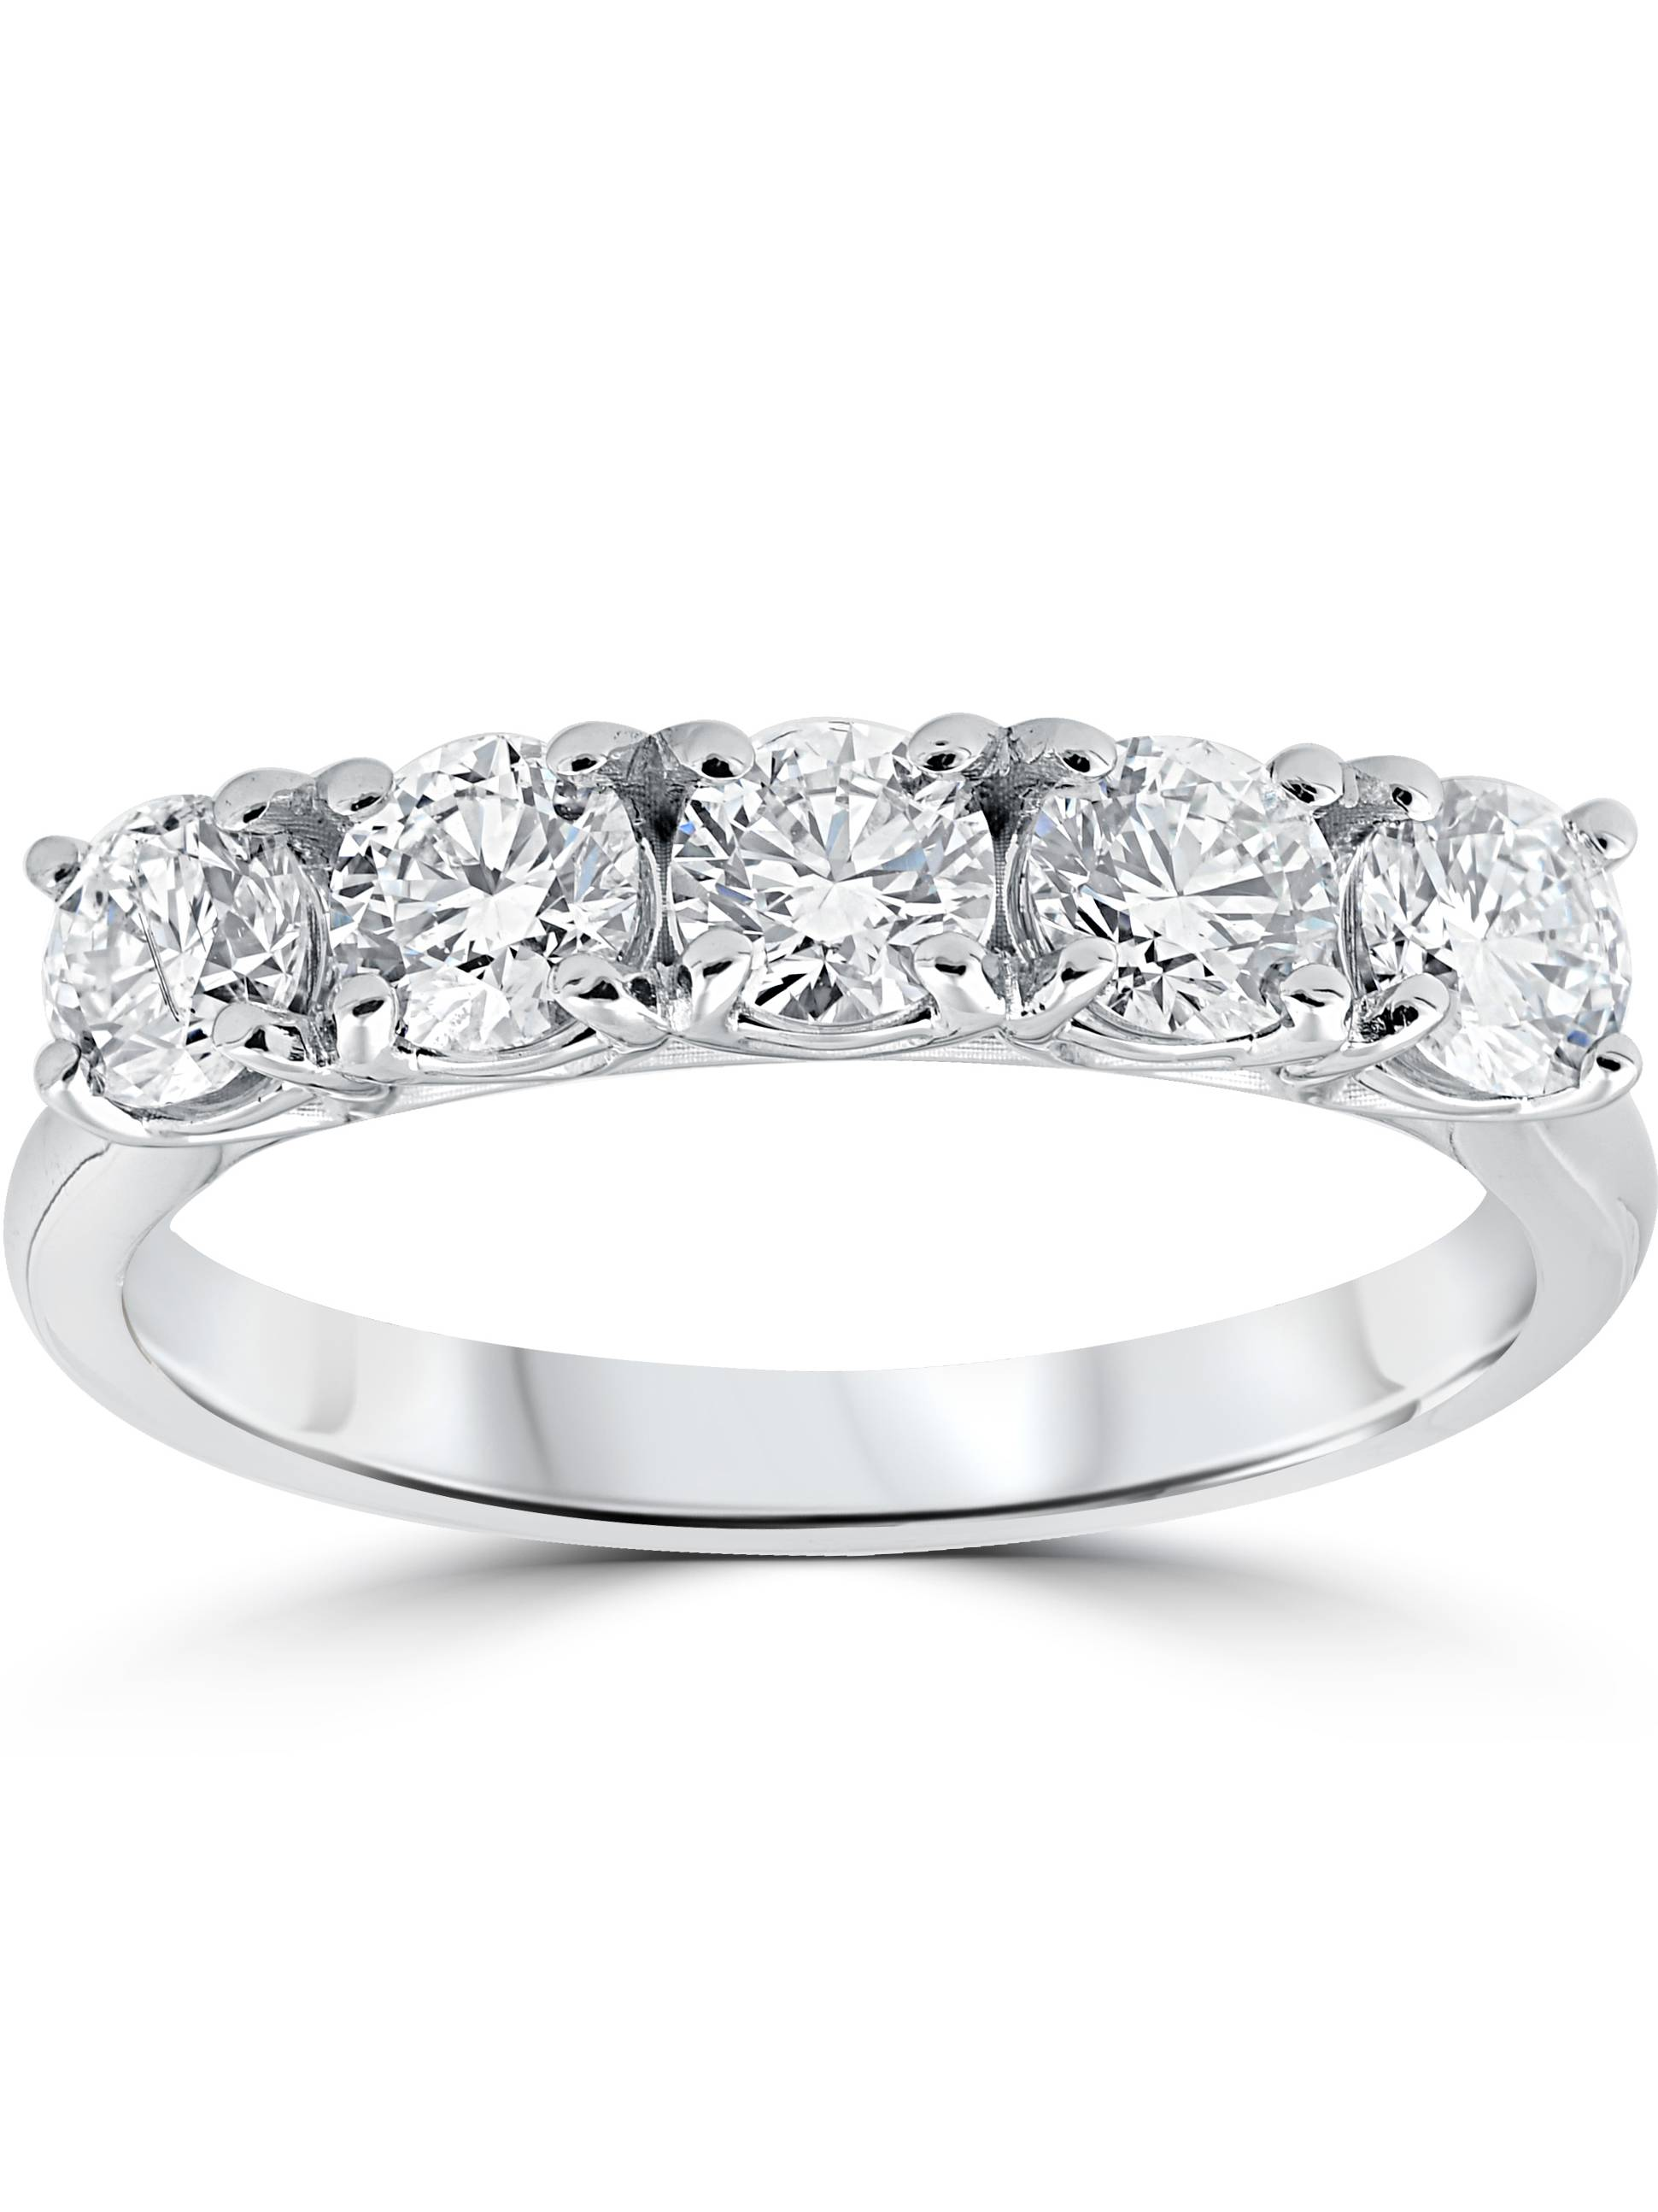 1 1/4 ct 5-Stone Diamond Trellis Anniversary Ring 14k White Gold